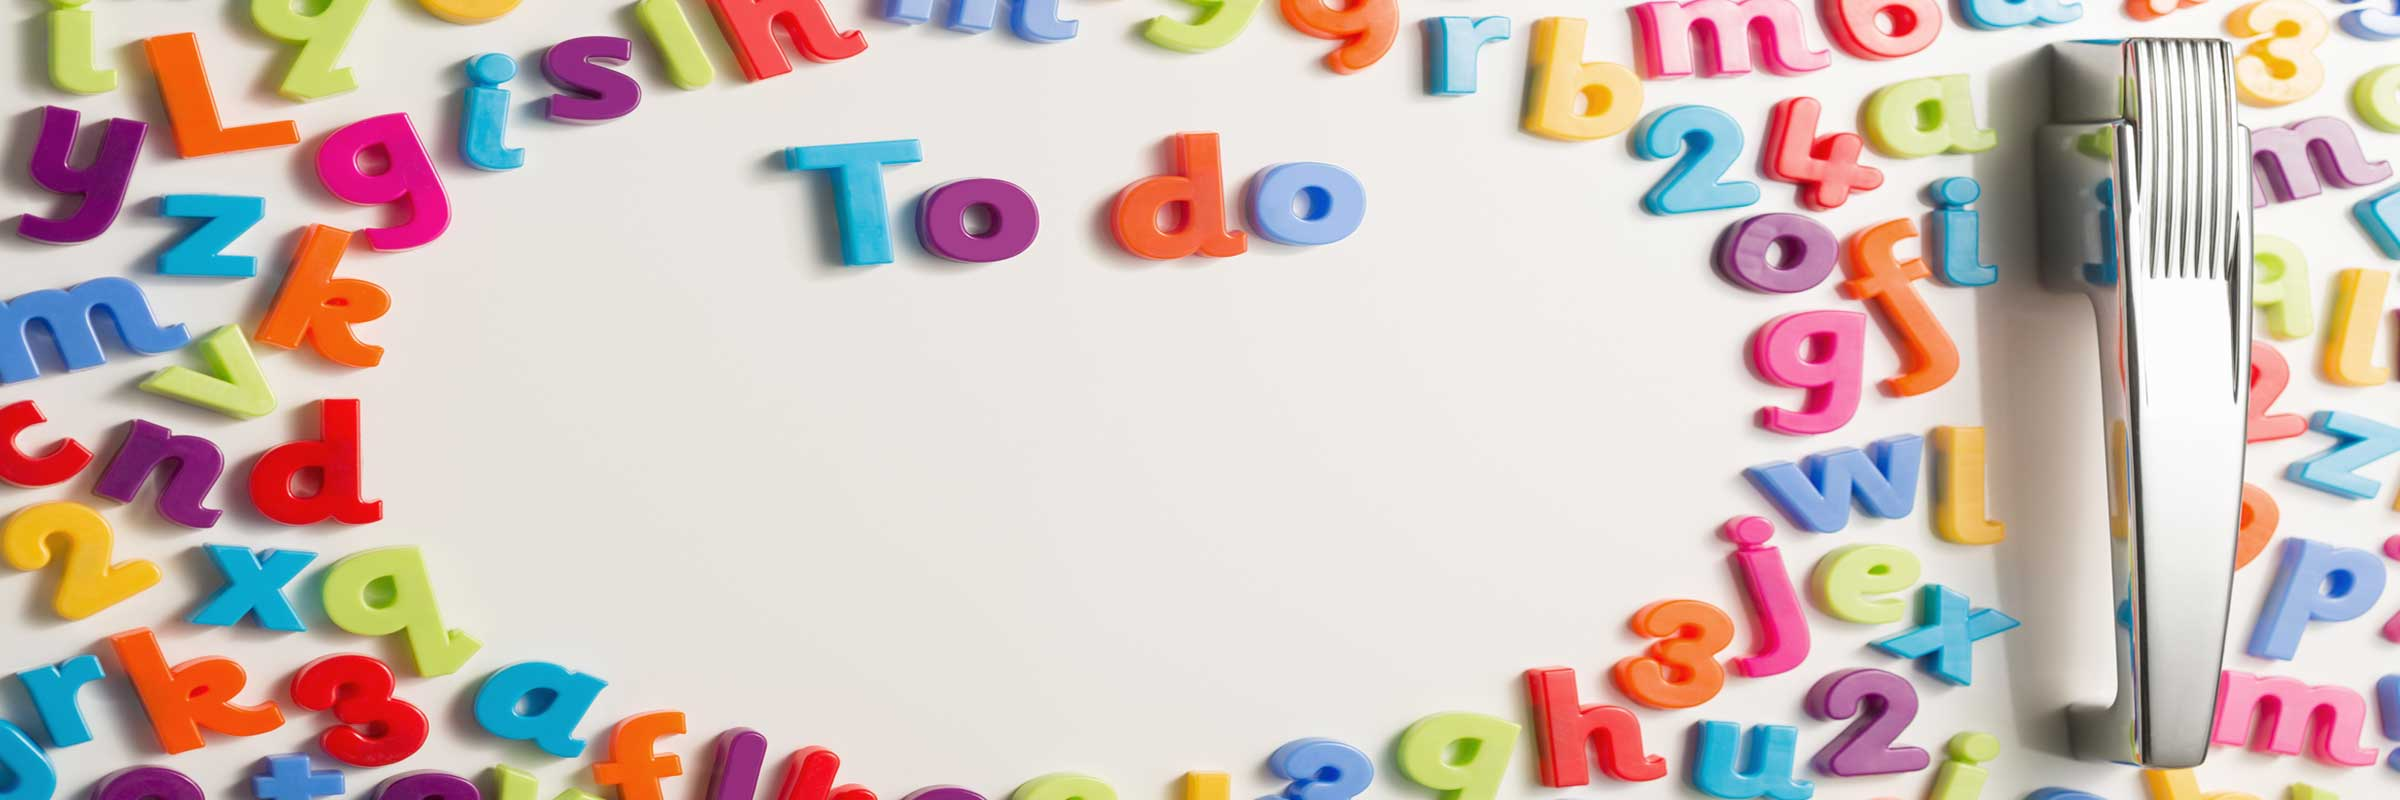 "A refrigerator door with magnetic letters that spell ""To Do""."